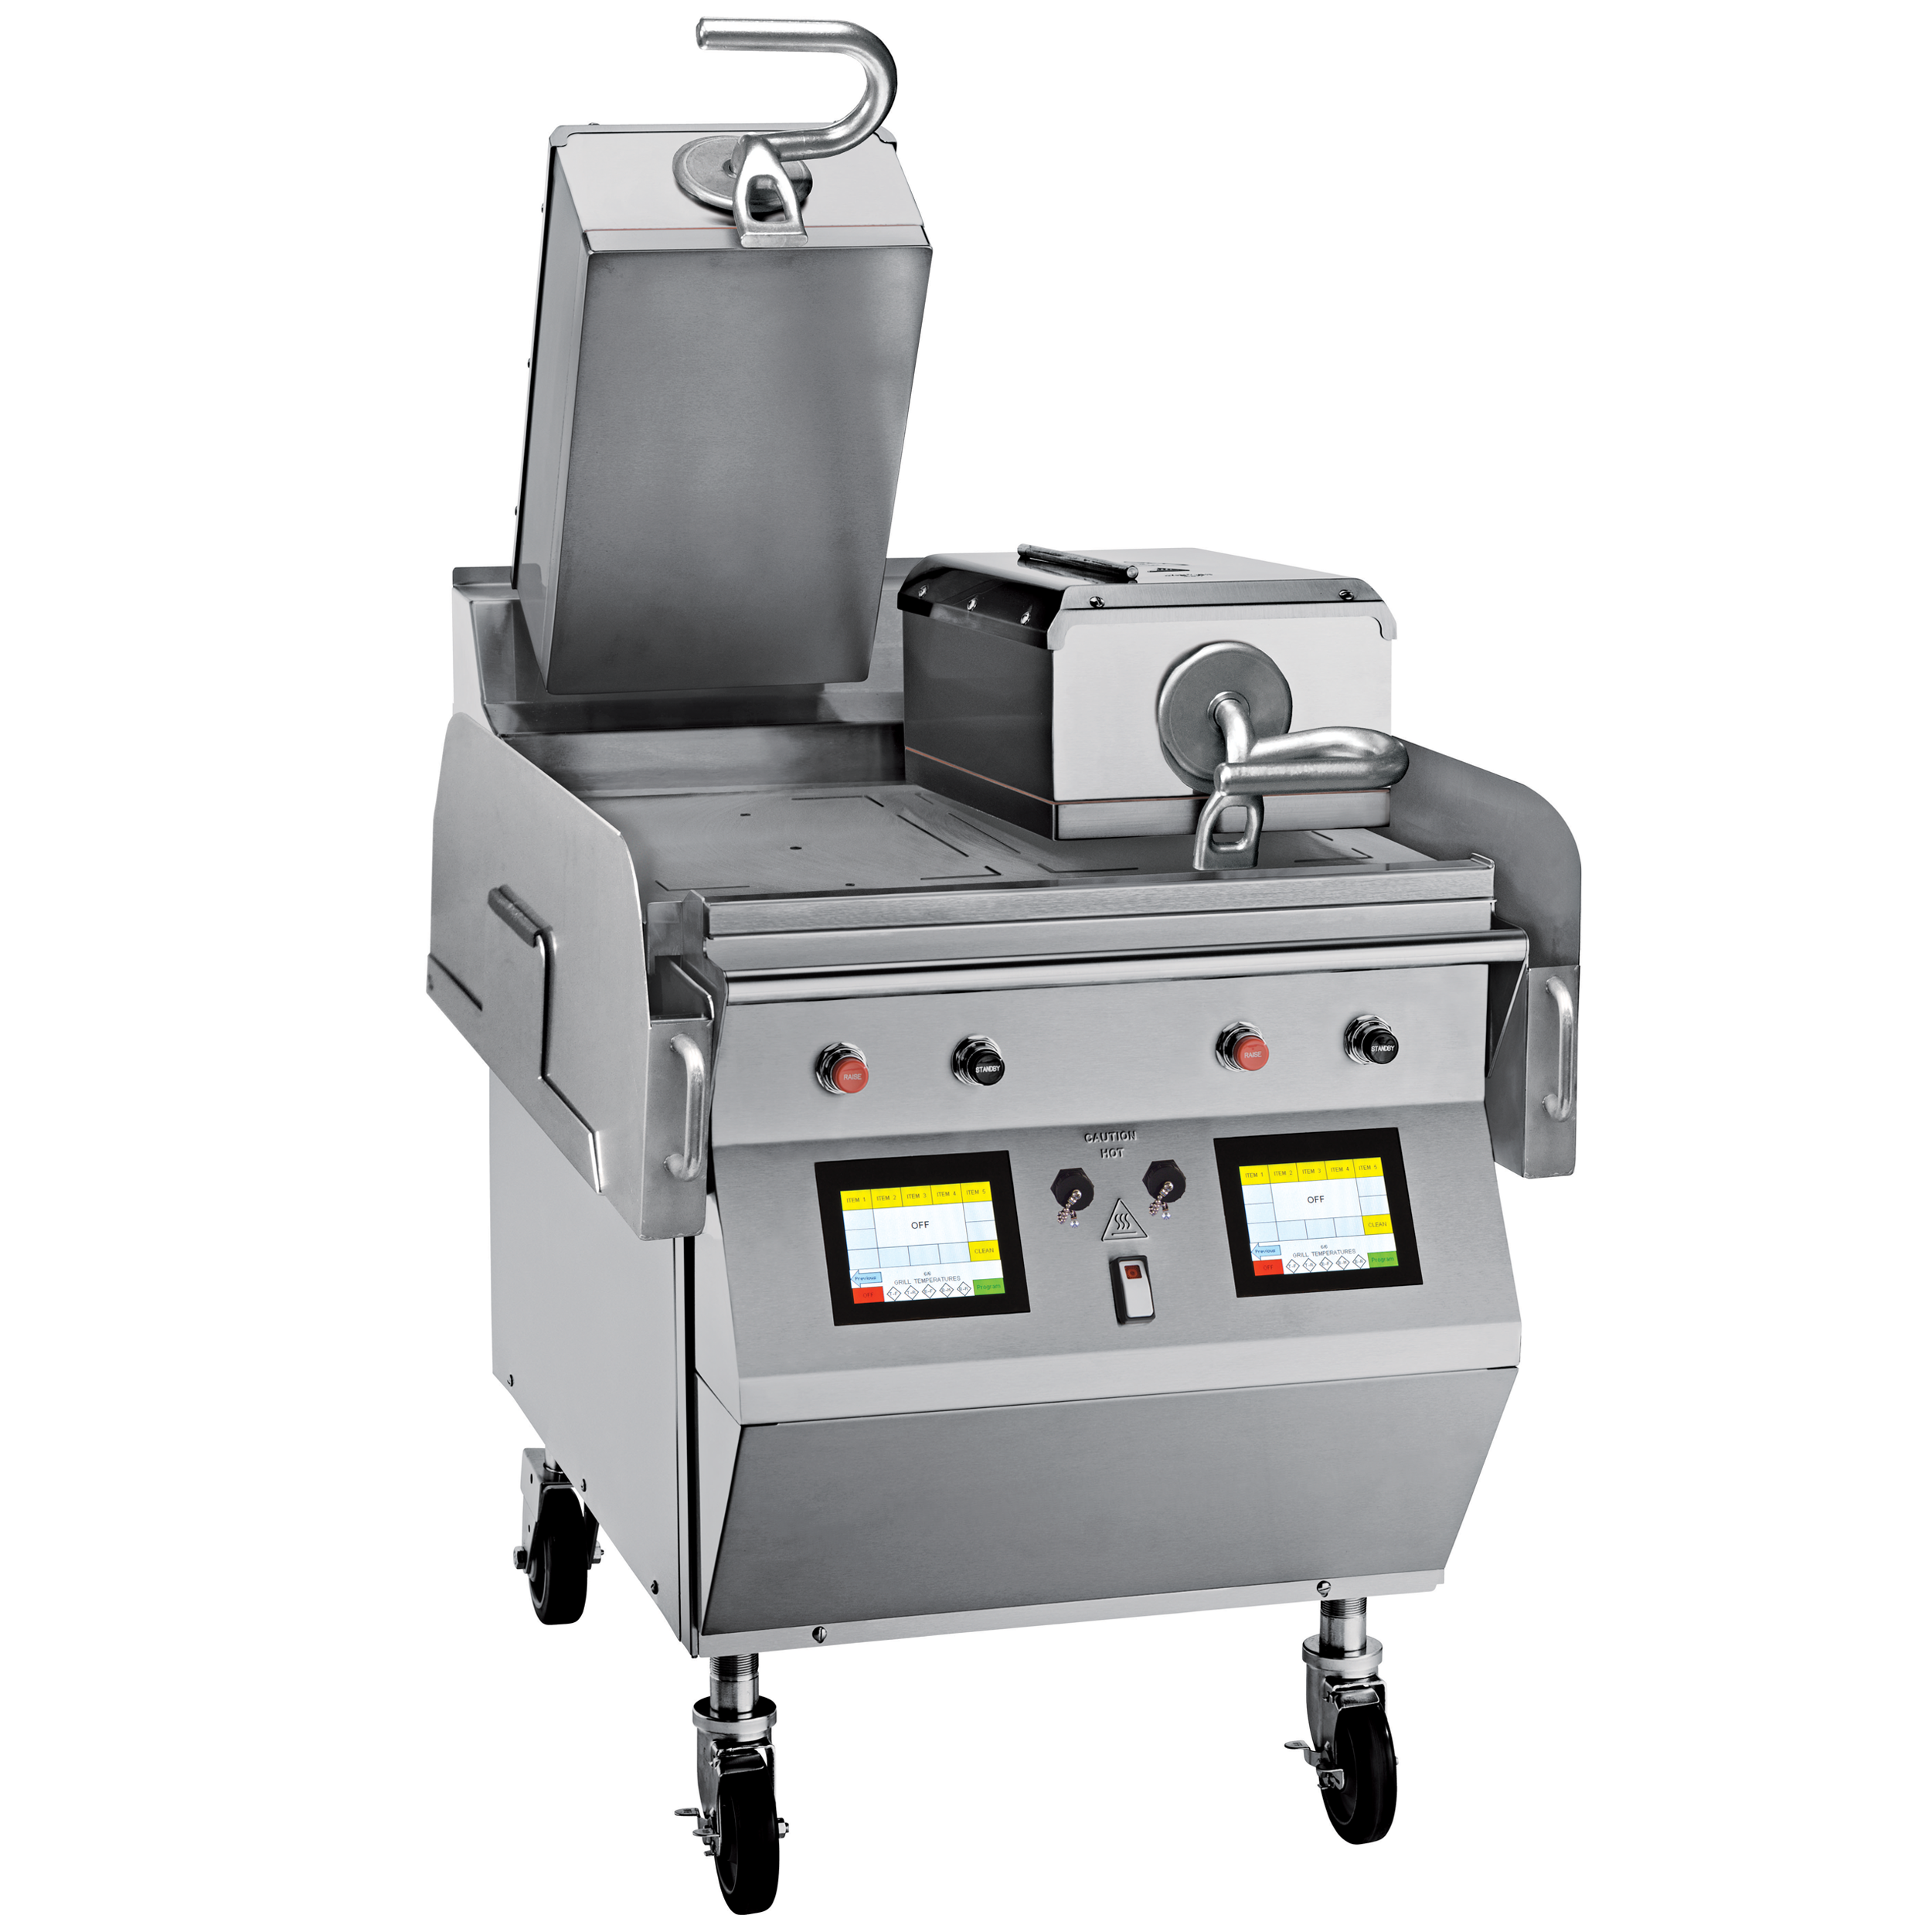 """Model L819   GAS/ELECTRIC 2 PLATEN 24"""" GRILL  One touch menu selection automatically provides accurate TIME, TEMPERATURE and GAP settings for every product.  KEY SPECIFICATIONS:   Lower Cooking Surface Heat Source : Gas   Upper Platen Heat Source : Electric   Cooking Surface Dimensions : 24""""   Installation : Floor Model   Upper Platens : 2"""